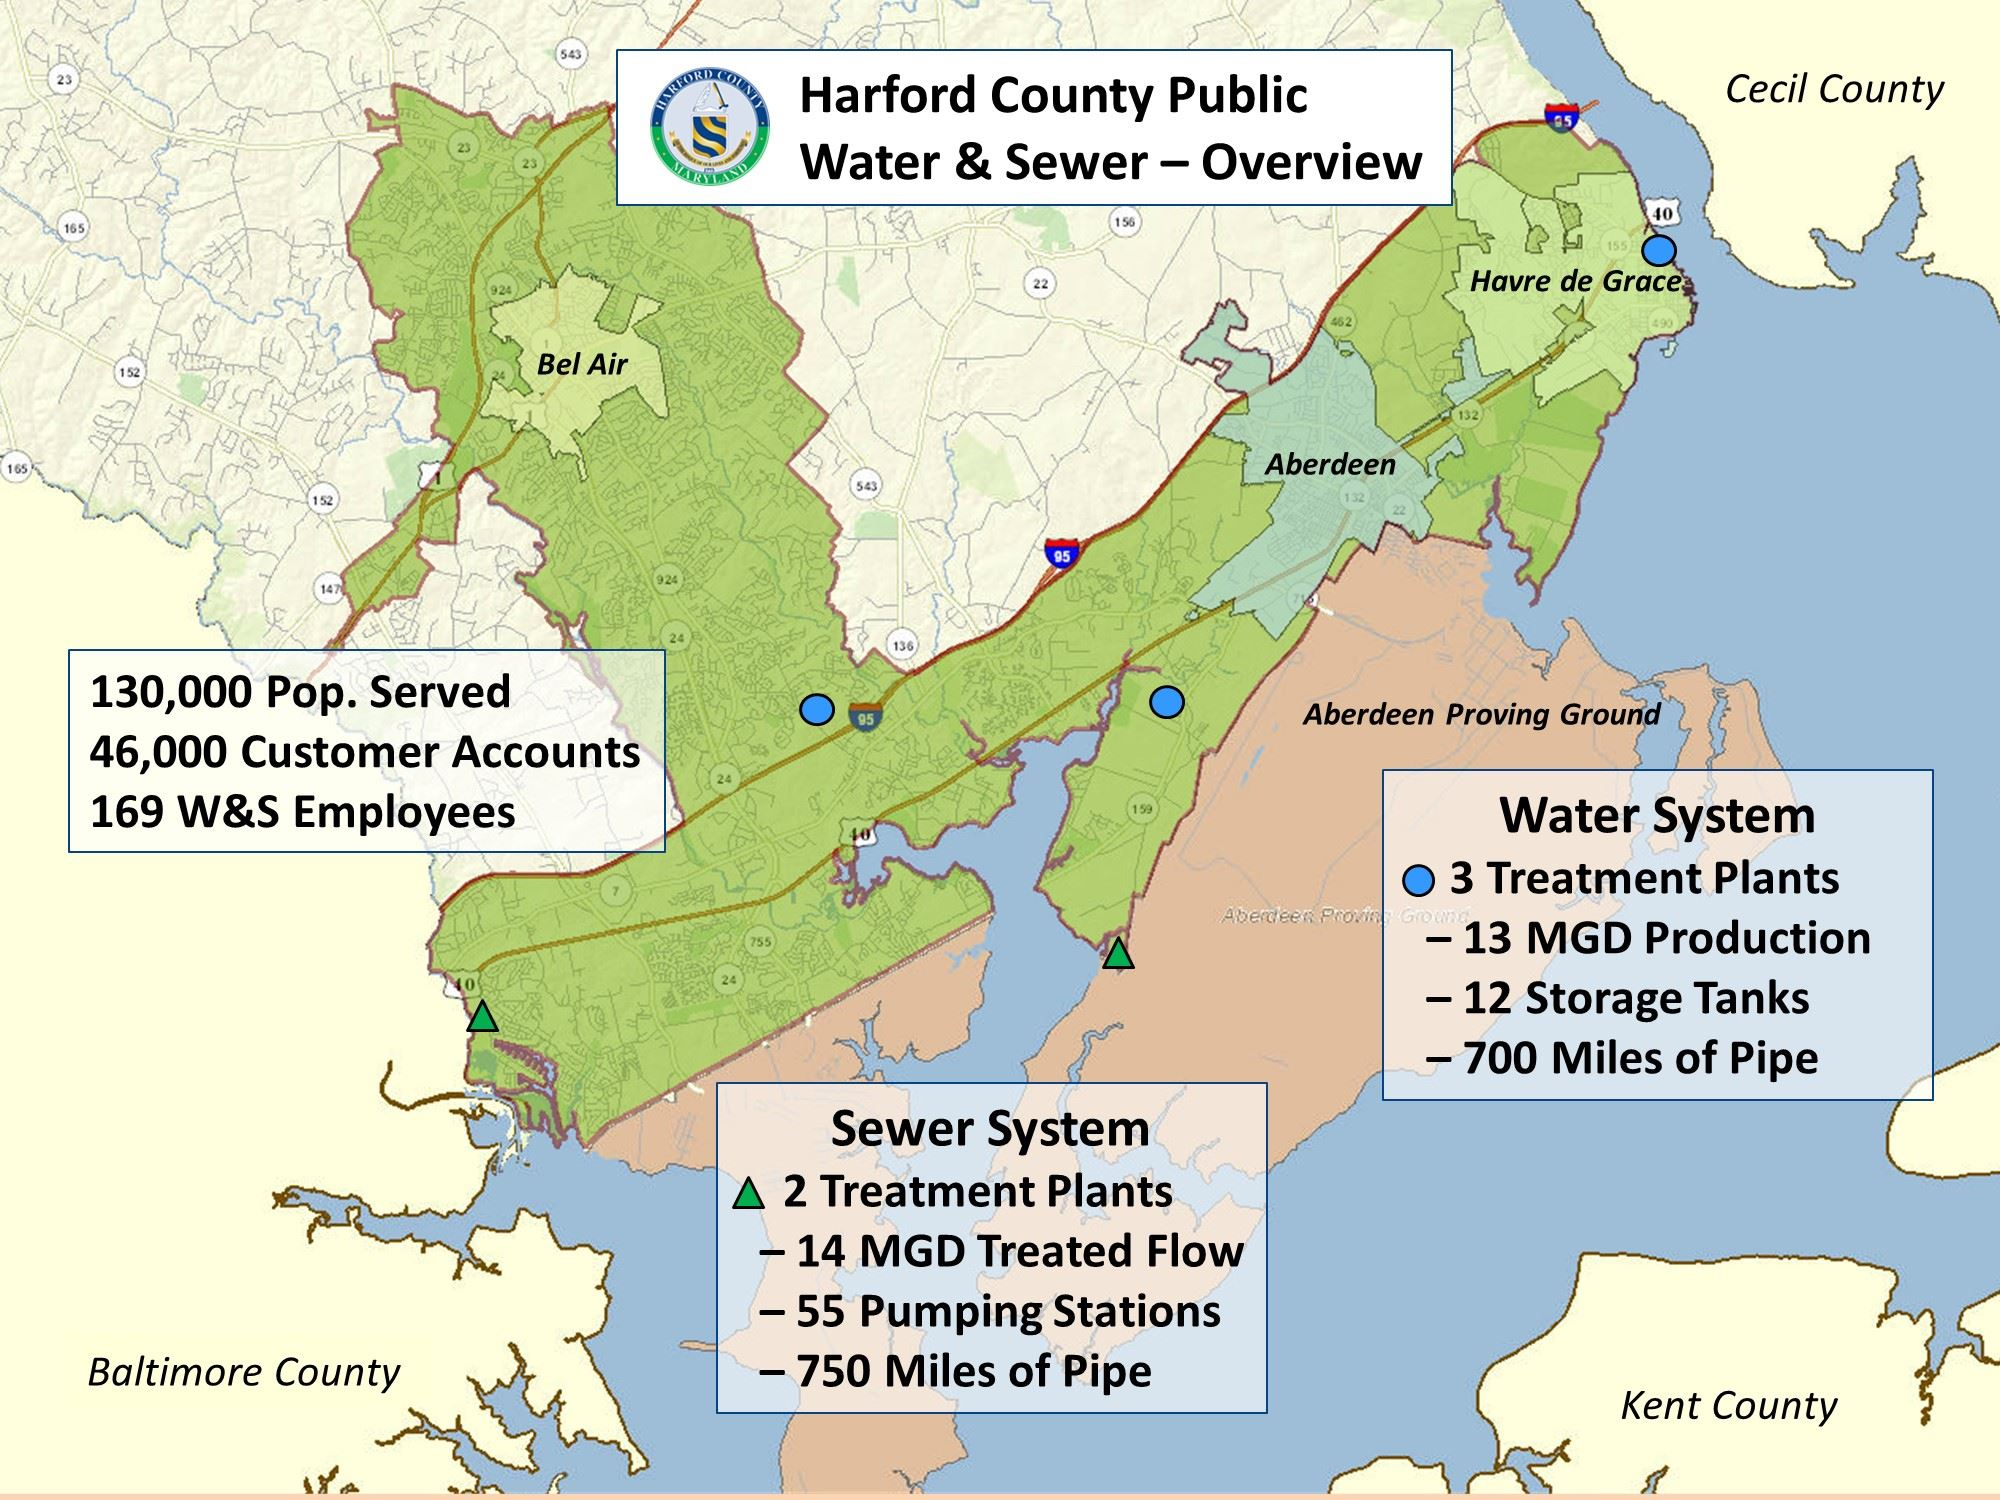 Harford Co - Overview